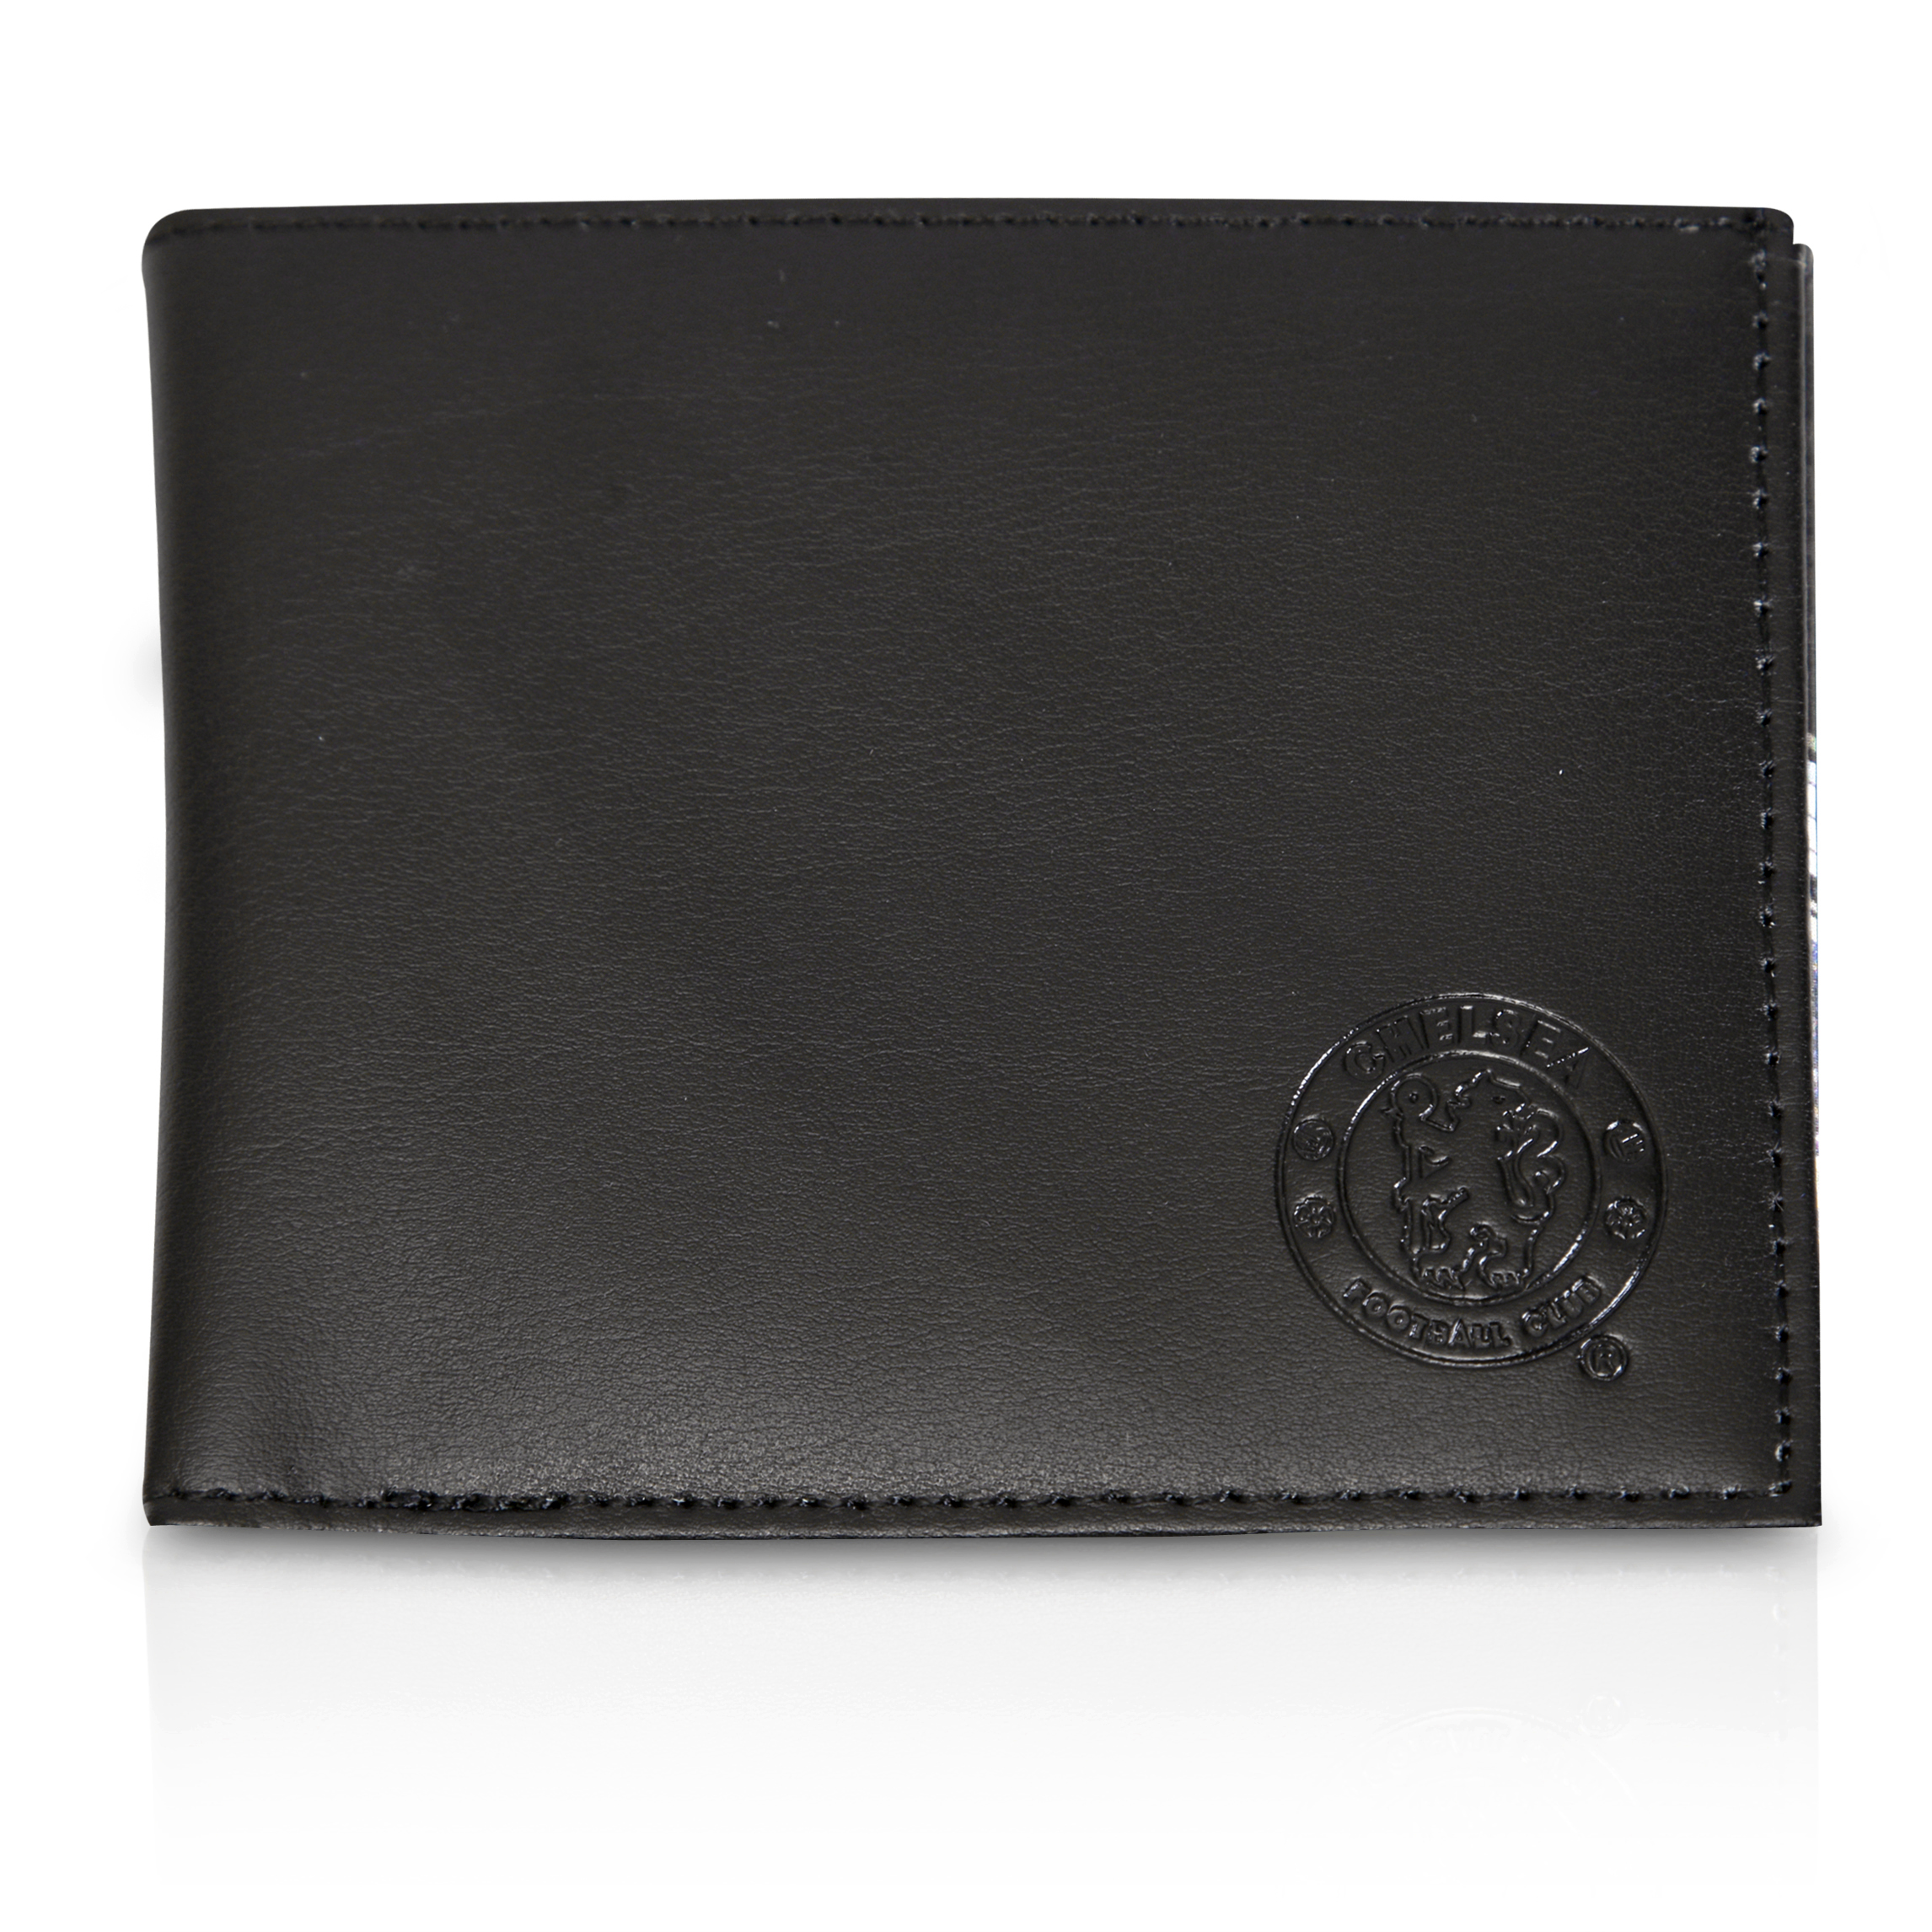 Chelsea Stadium Leather Wallet - Black